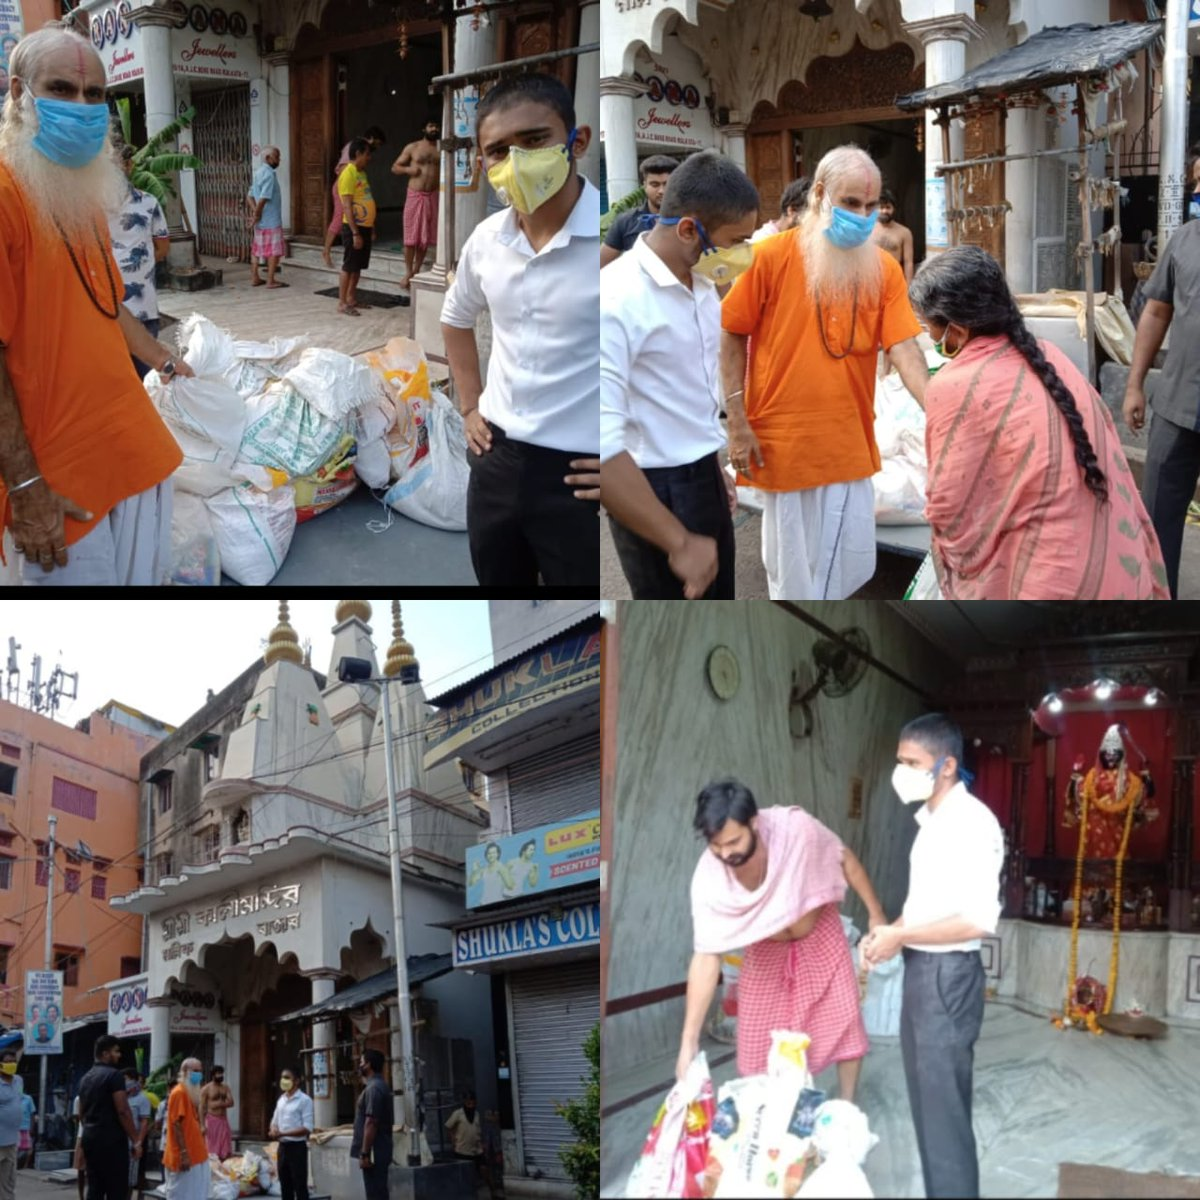 Today we distributed monthly ration to 100 families from Kali Mandir; Mullik Bazaar; Kolkata. The priest of the Mandir was a very humble man. Hunger sees no religion!